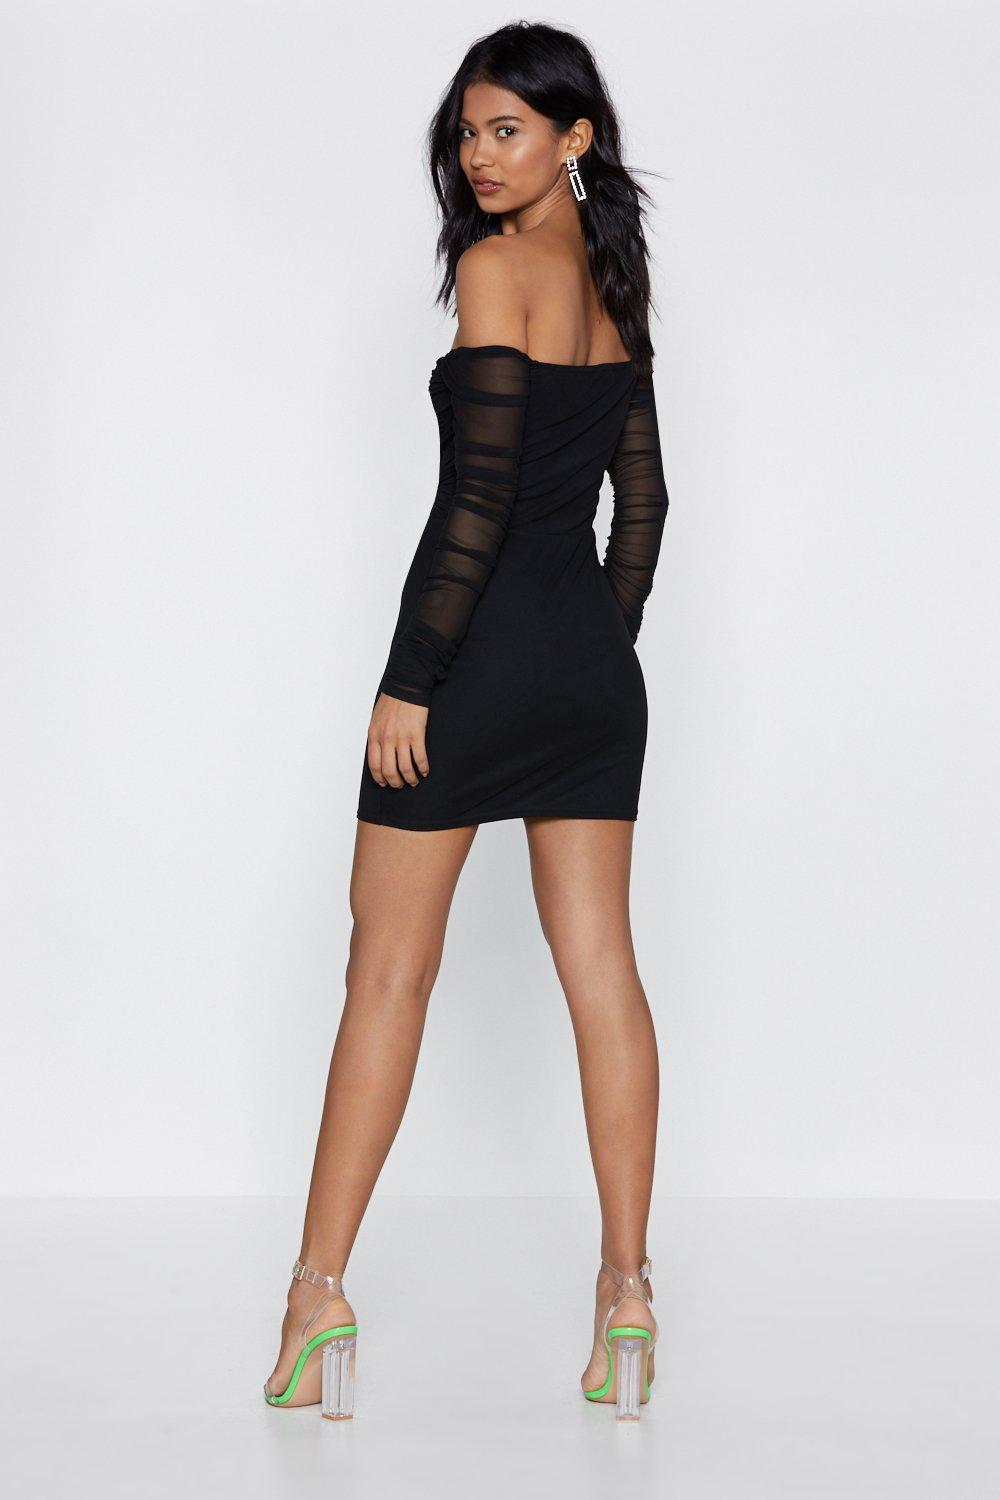 098b2f9a943 ... Off-the-Shoulder Dress. Hover to zoom